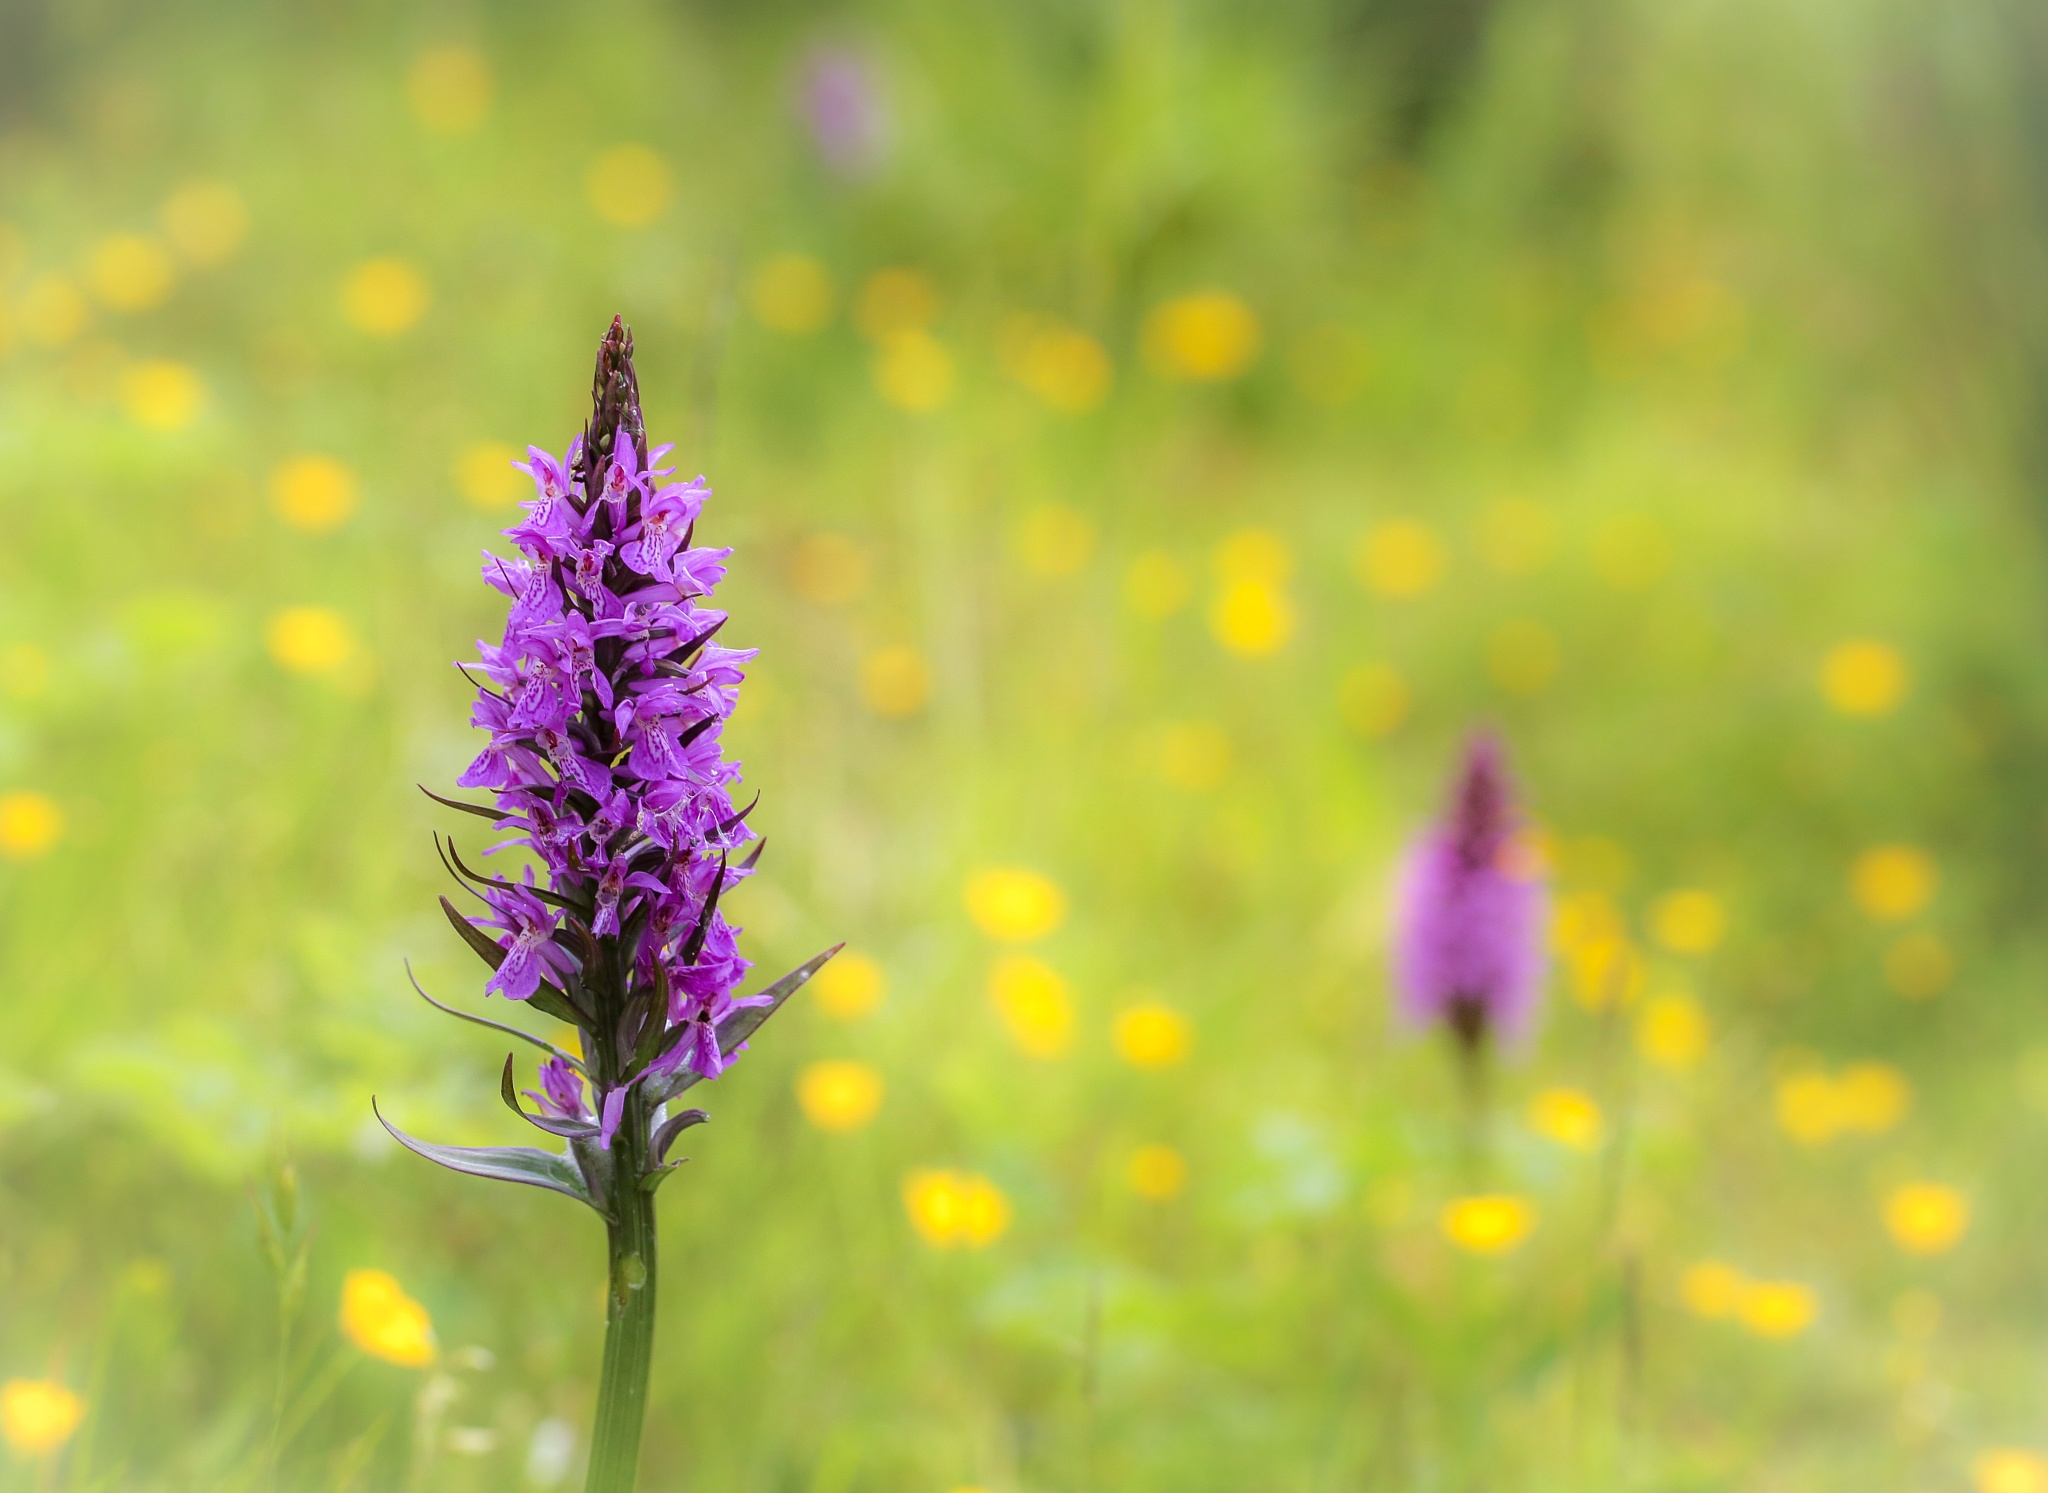 Orchids and buttercups by Sarah Walters